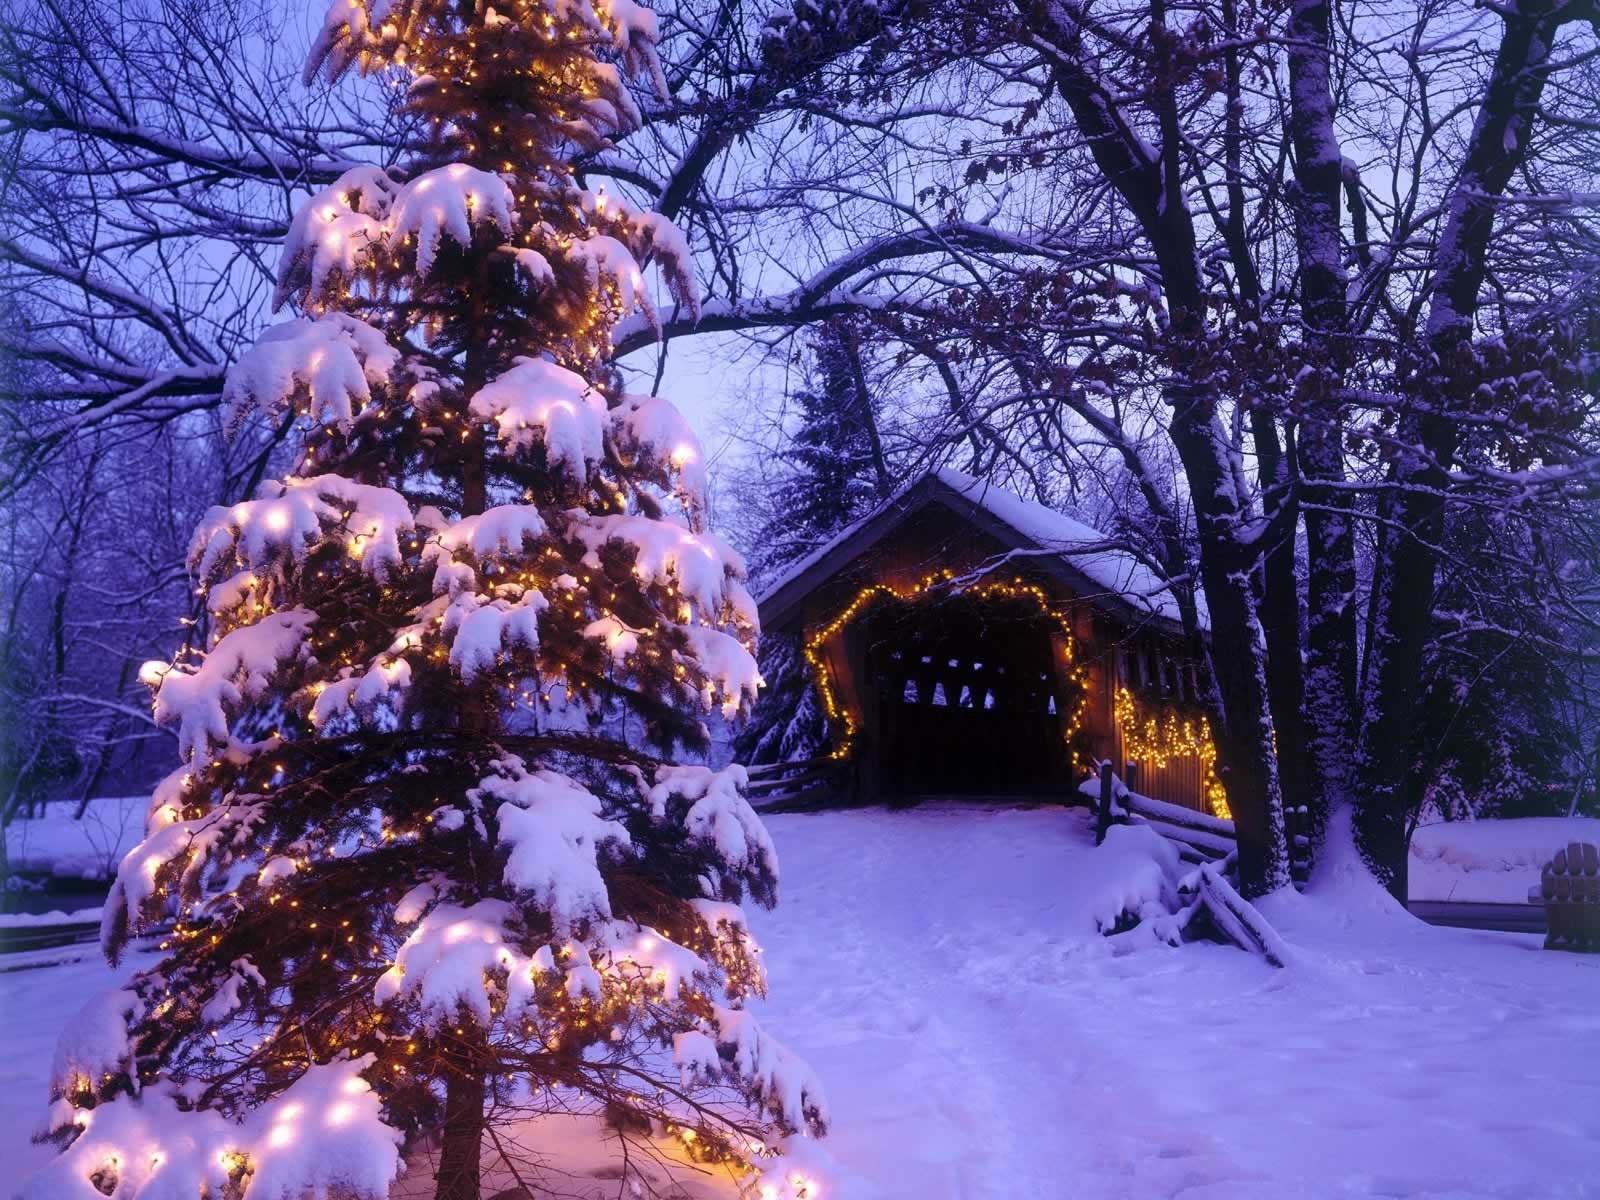 Waupaca Wisconsin  Christmas Scenes Wallpaper Image